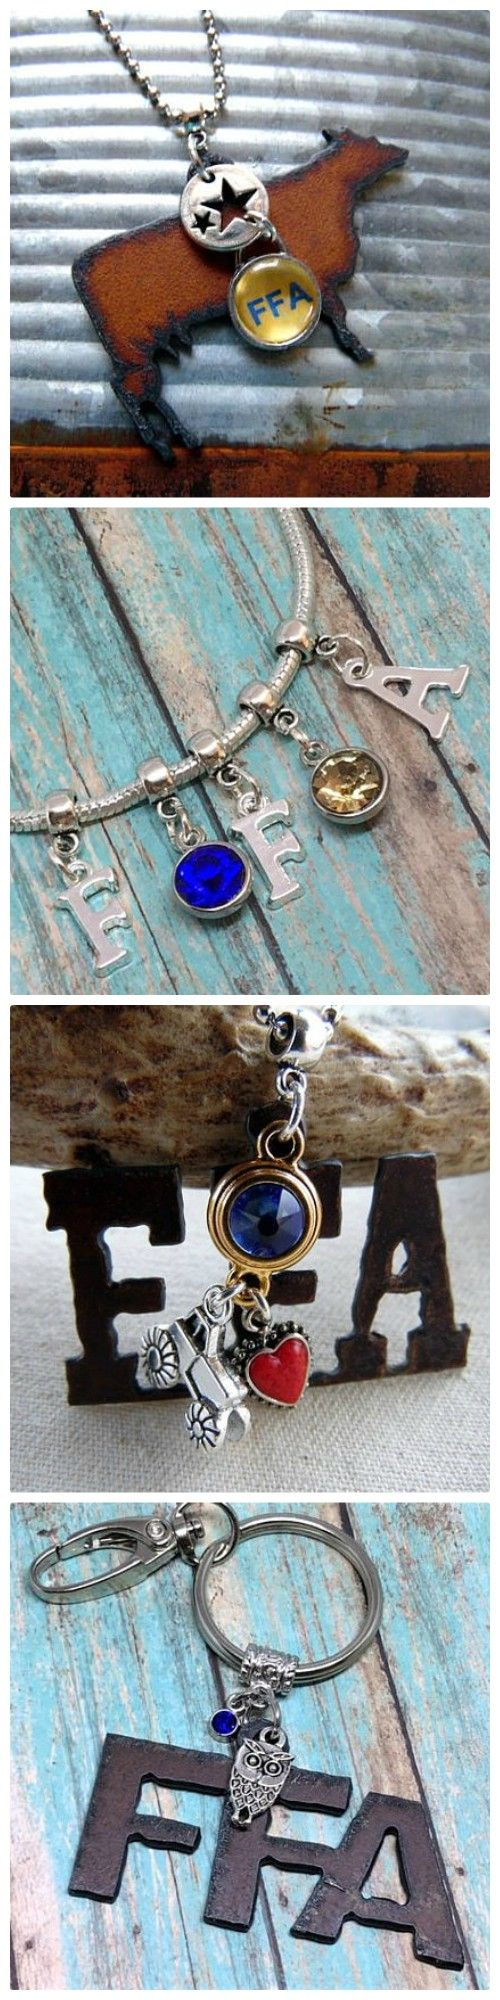 FFA Jewelry - show your FFA spirit with unique FFA jewelry and gifts from Whippoorwill Valley! www.whippoorwillvalley.etsy.com